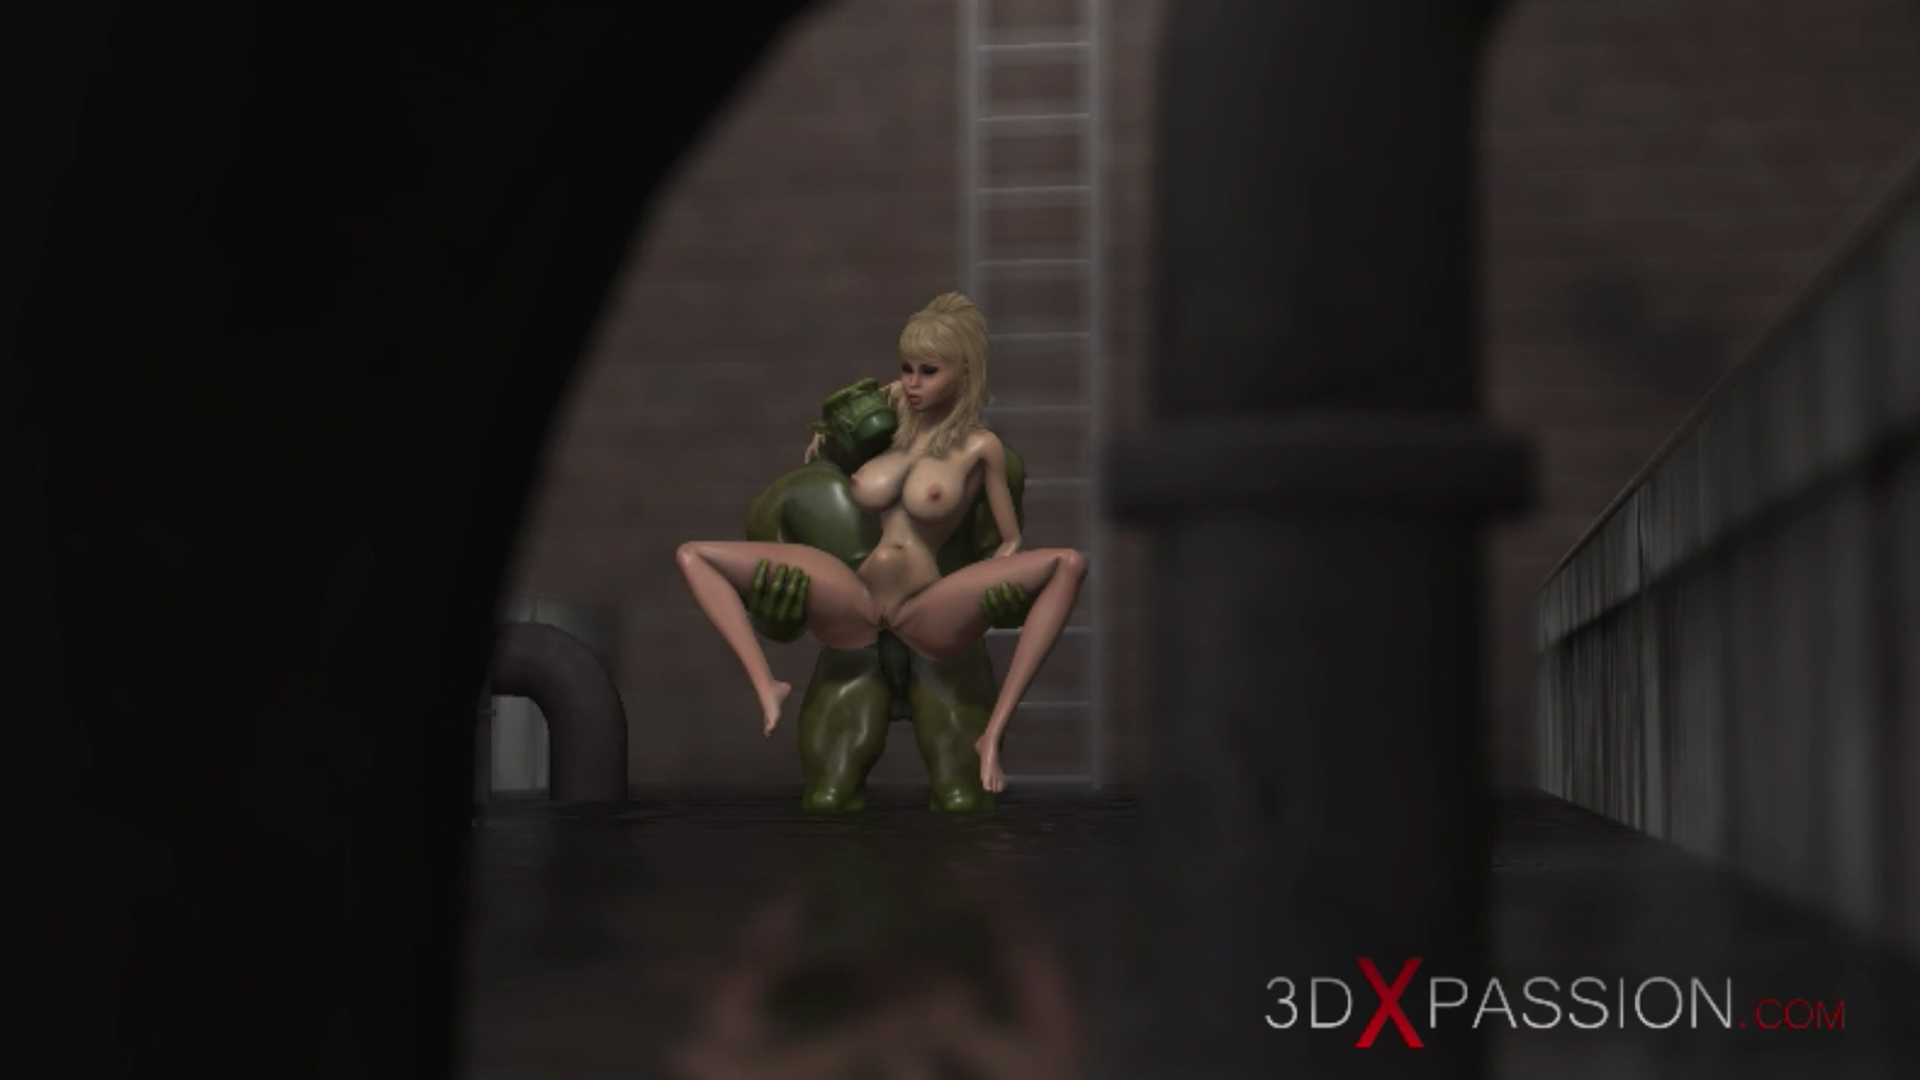 Horny hot girl ass fuck green monster sewer